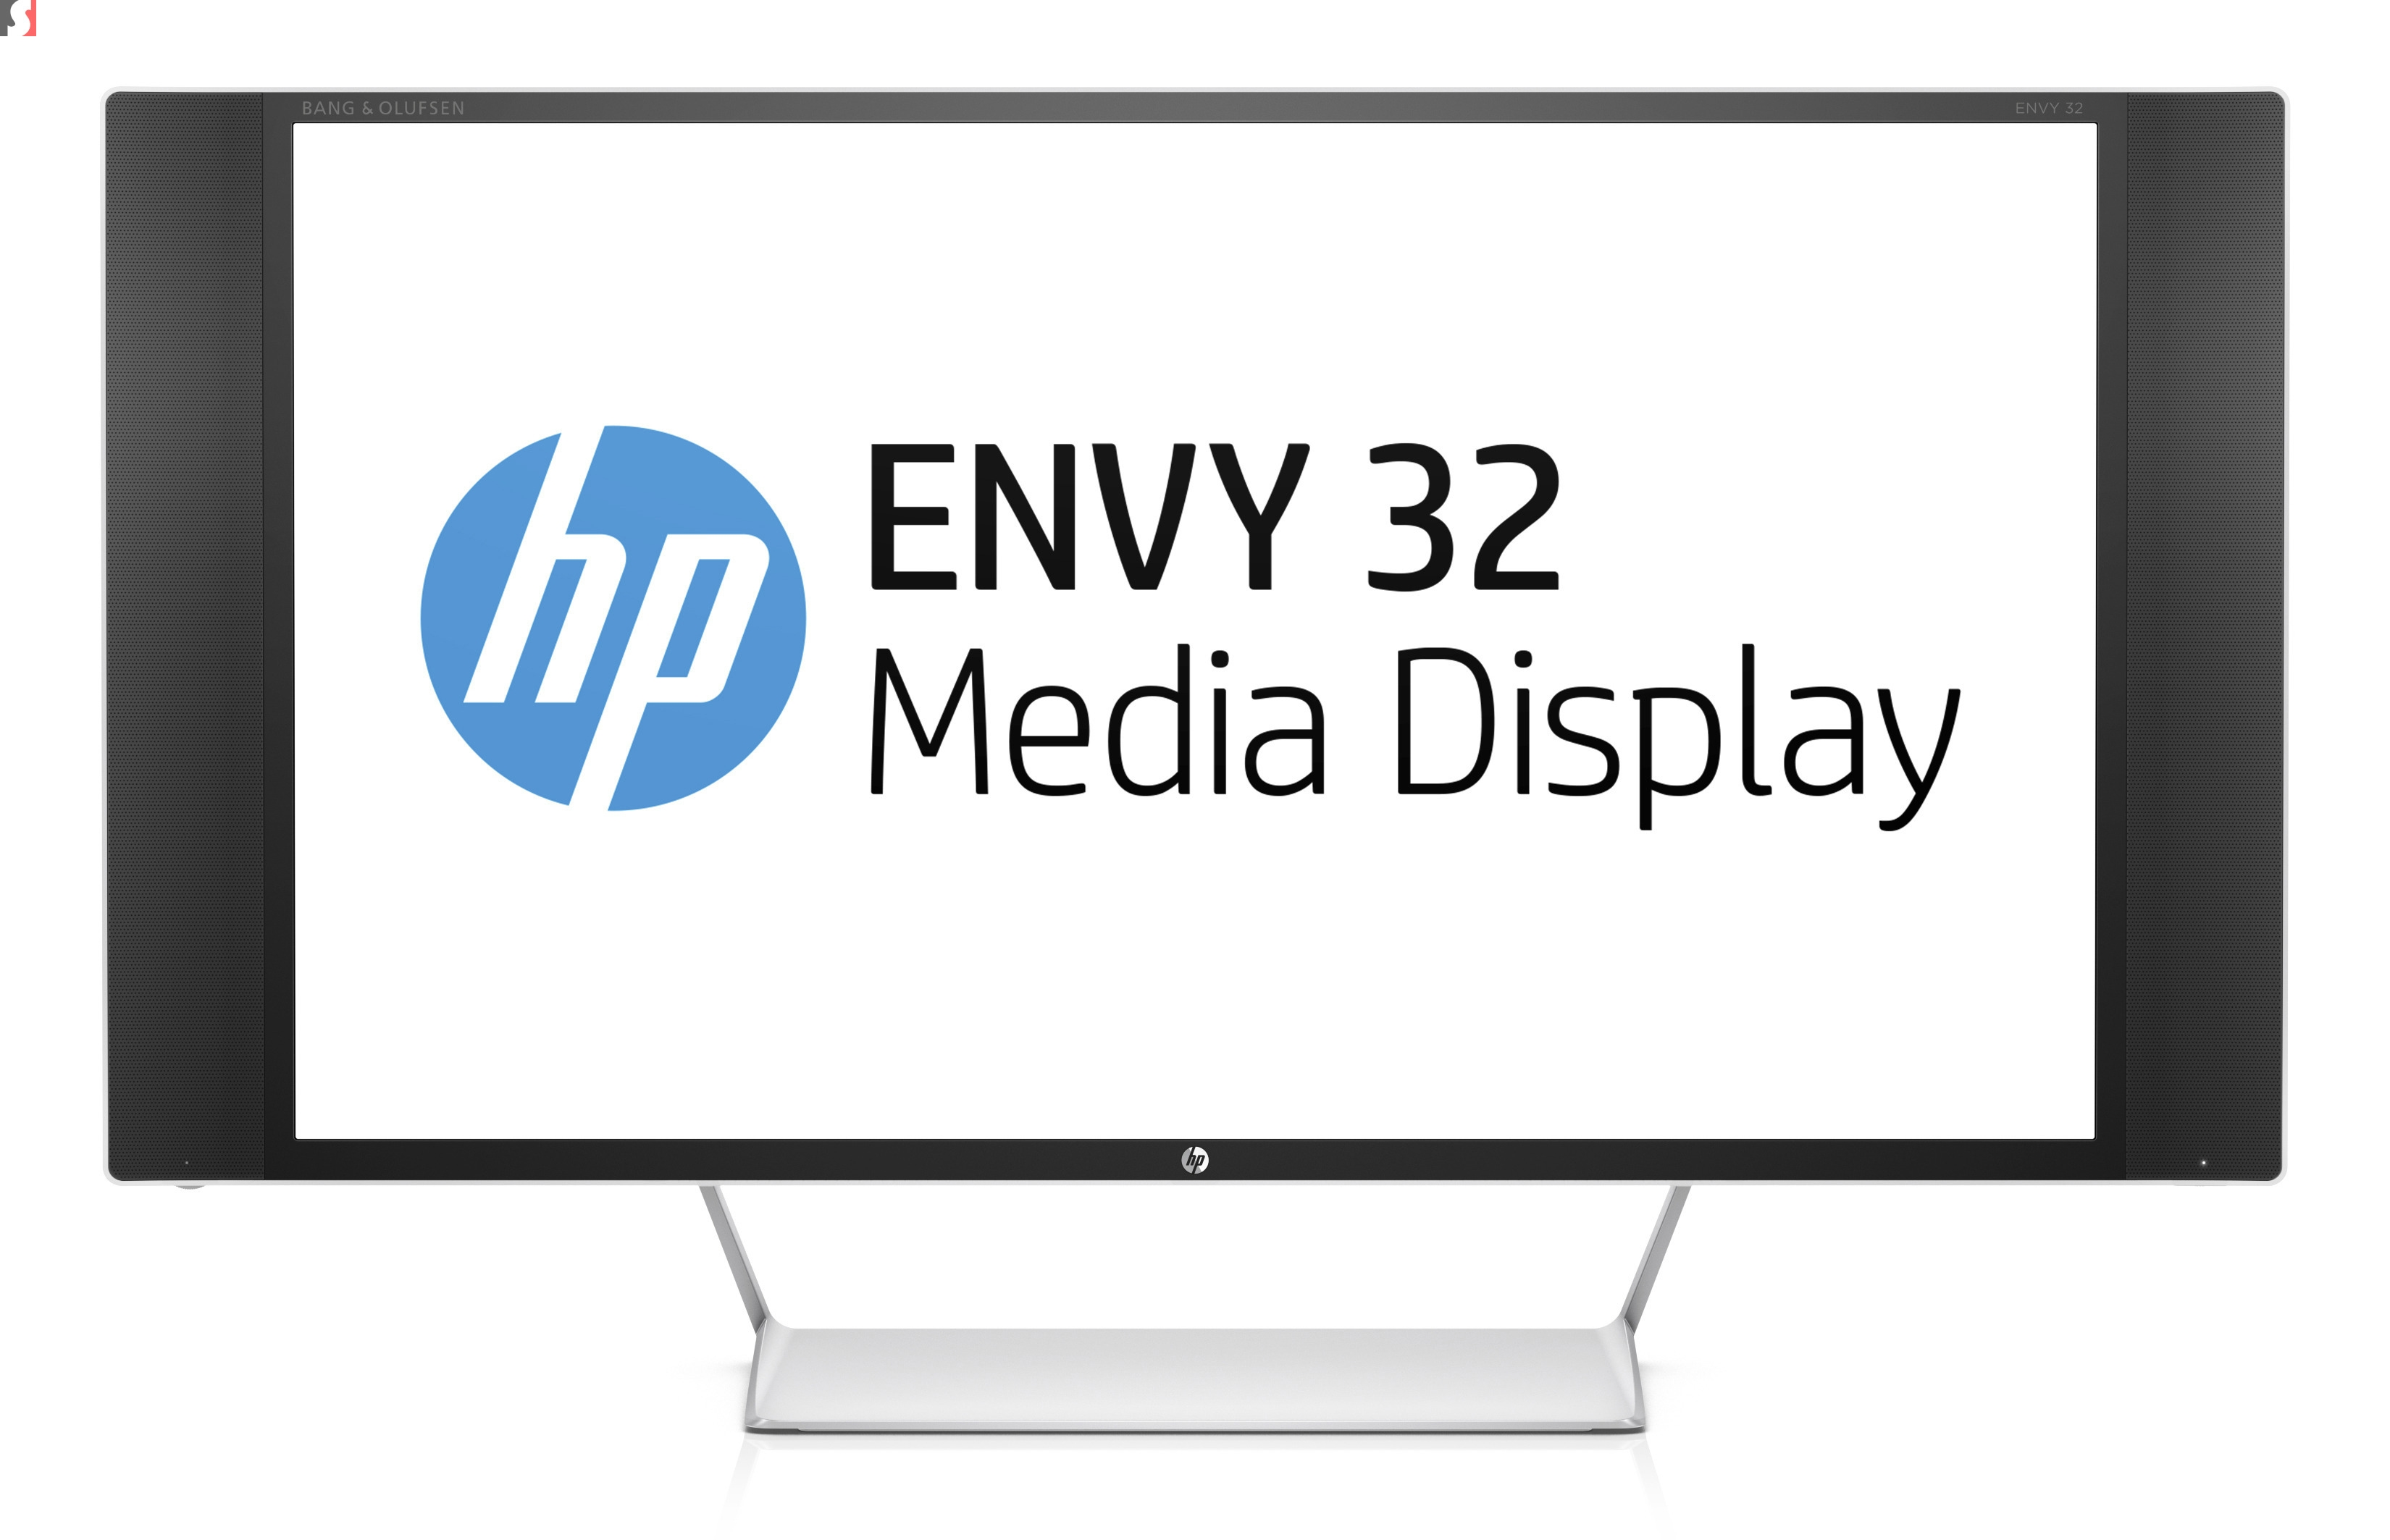 "Refurbished HP ENVY 32 32"" Media Display Bang & Olufsen 2560x1440 (QHD) HDMI DisplayPort by HP"